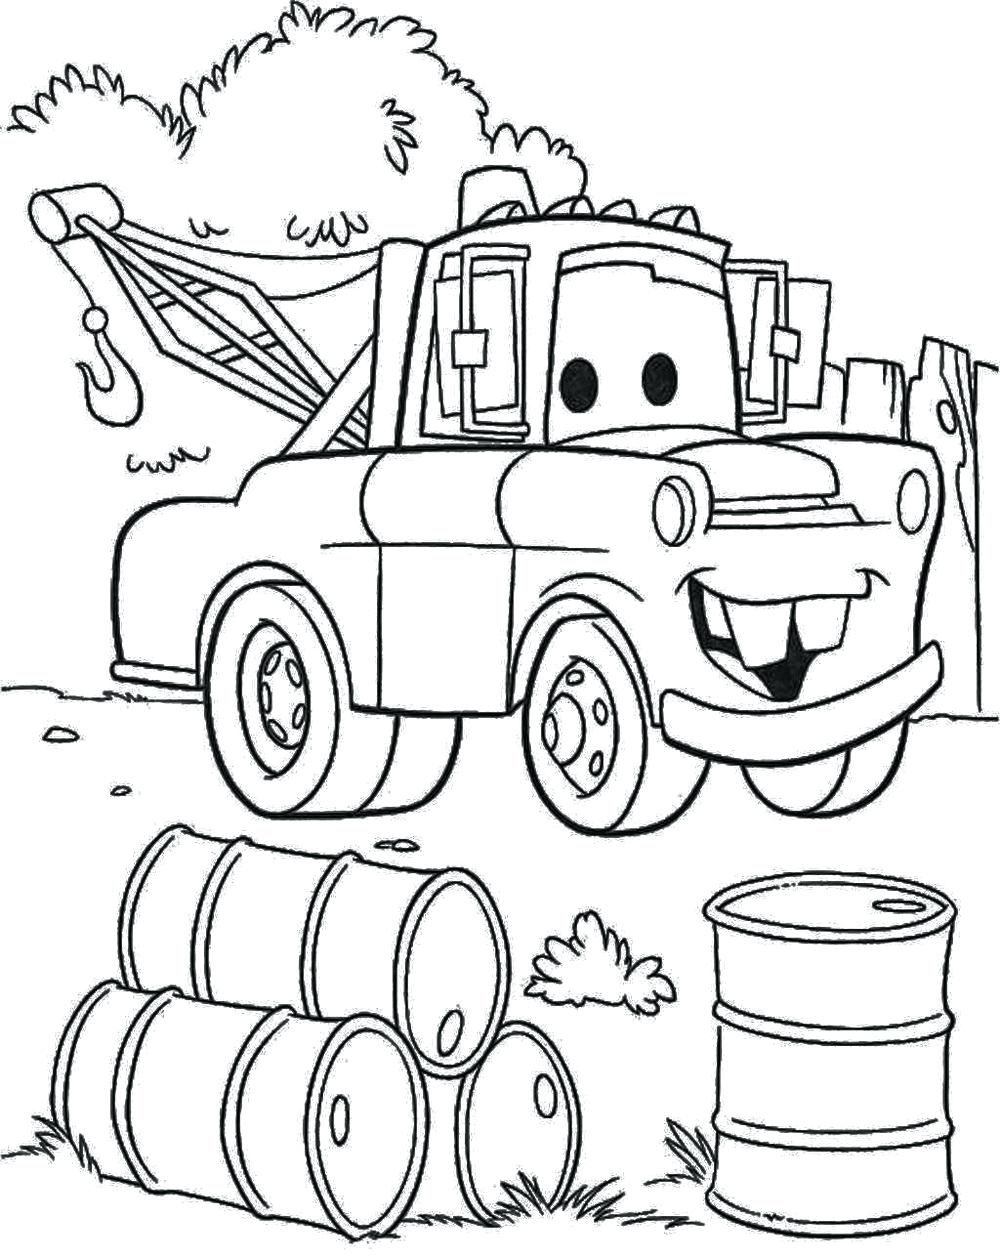 1000x1259 Awesome Coloring Pages Disney Mater Gallery Printable Coloring Sheet